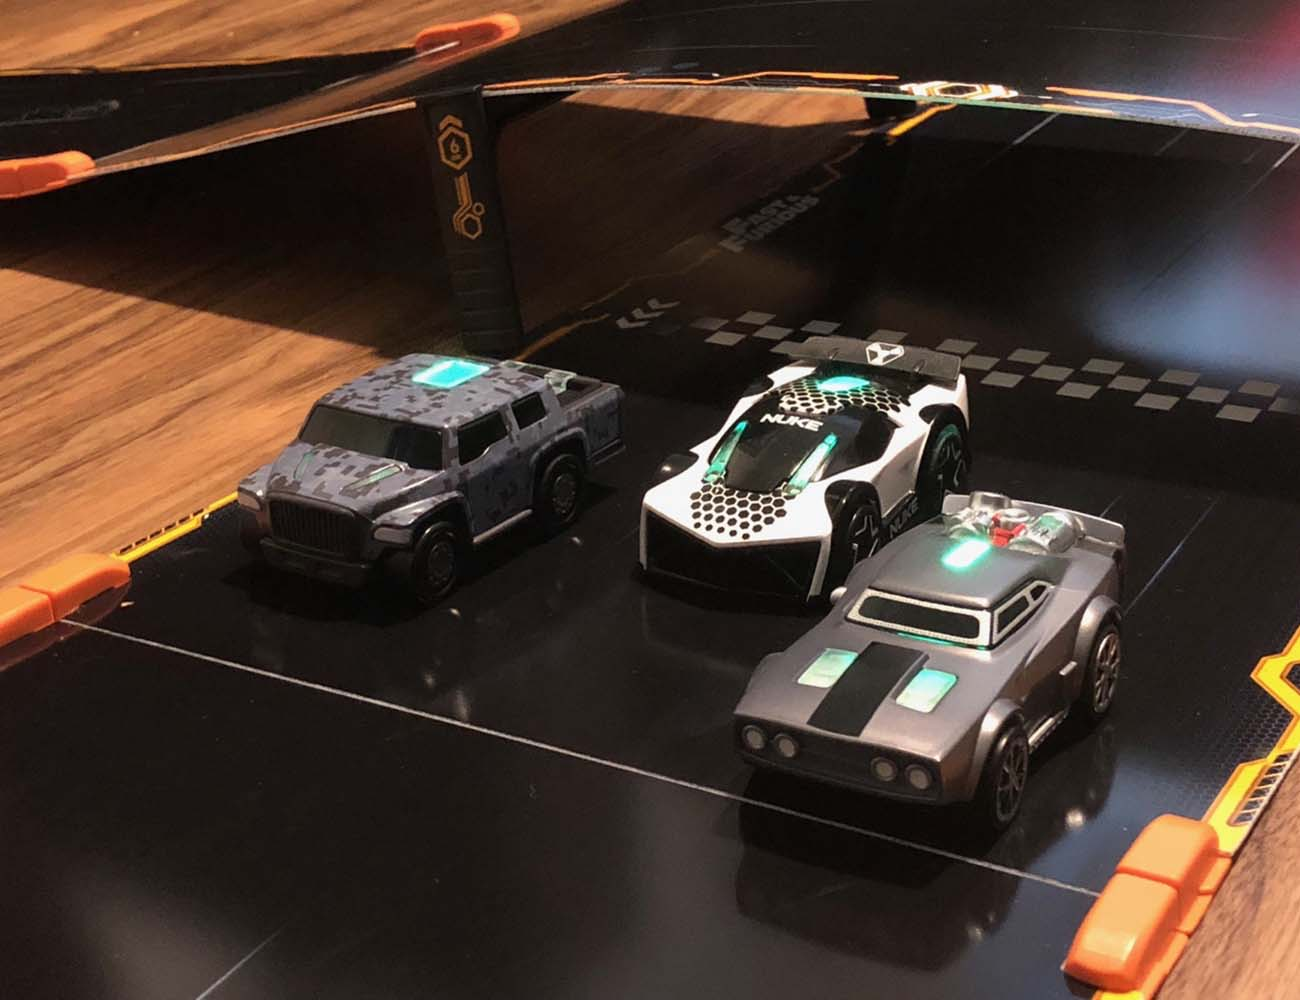 Anki OVERDRIVE Racetrack Starter Kit